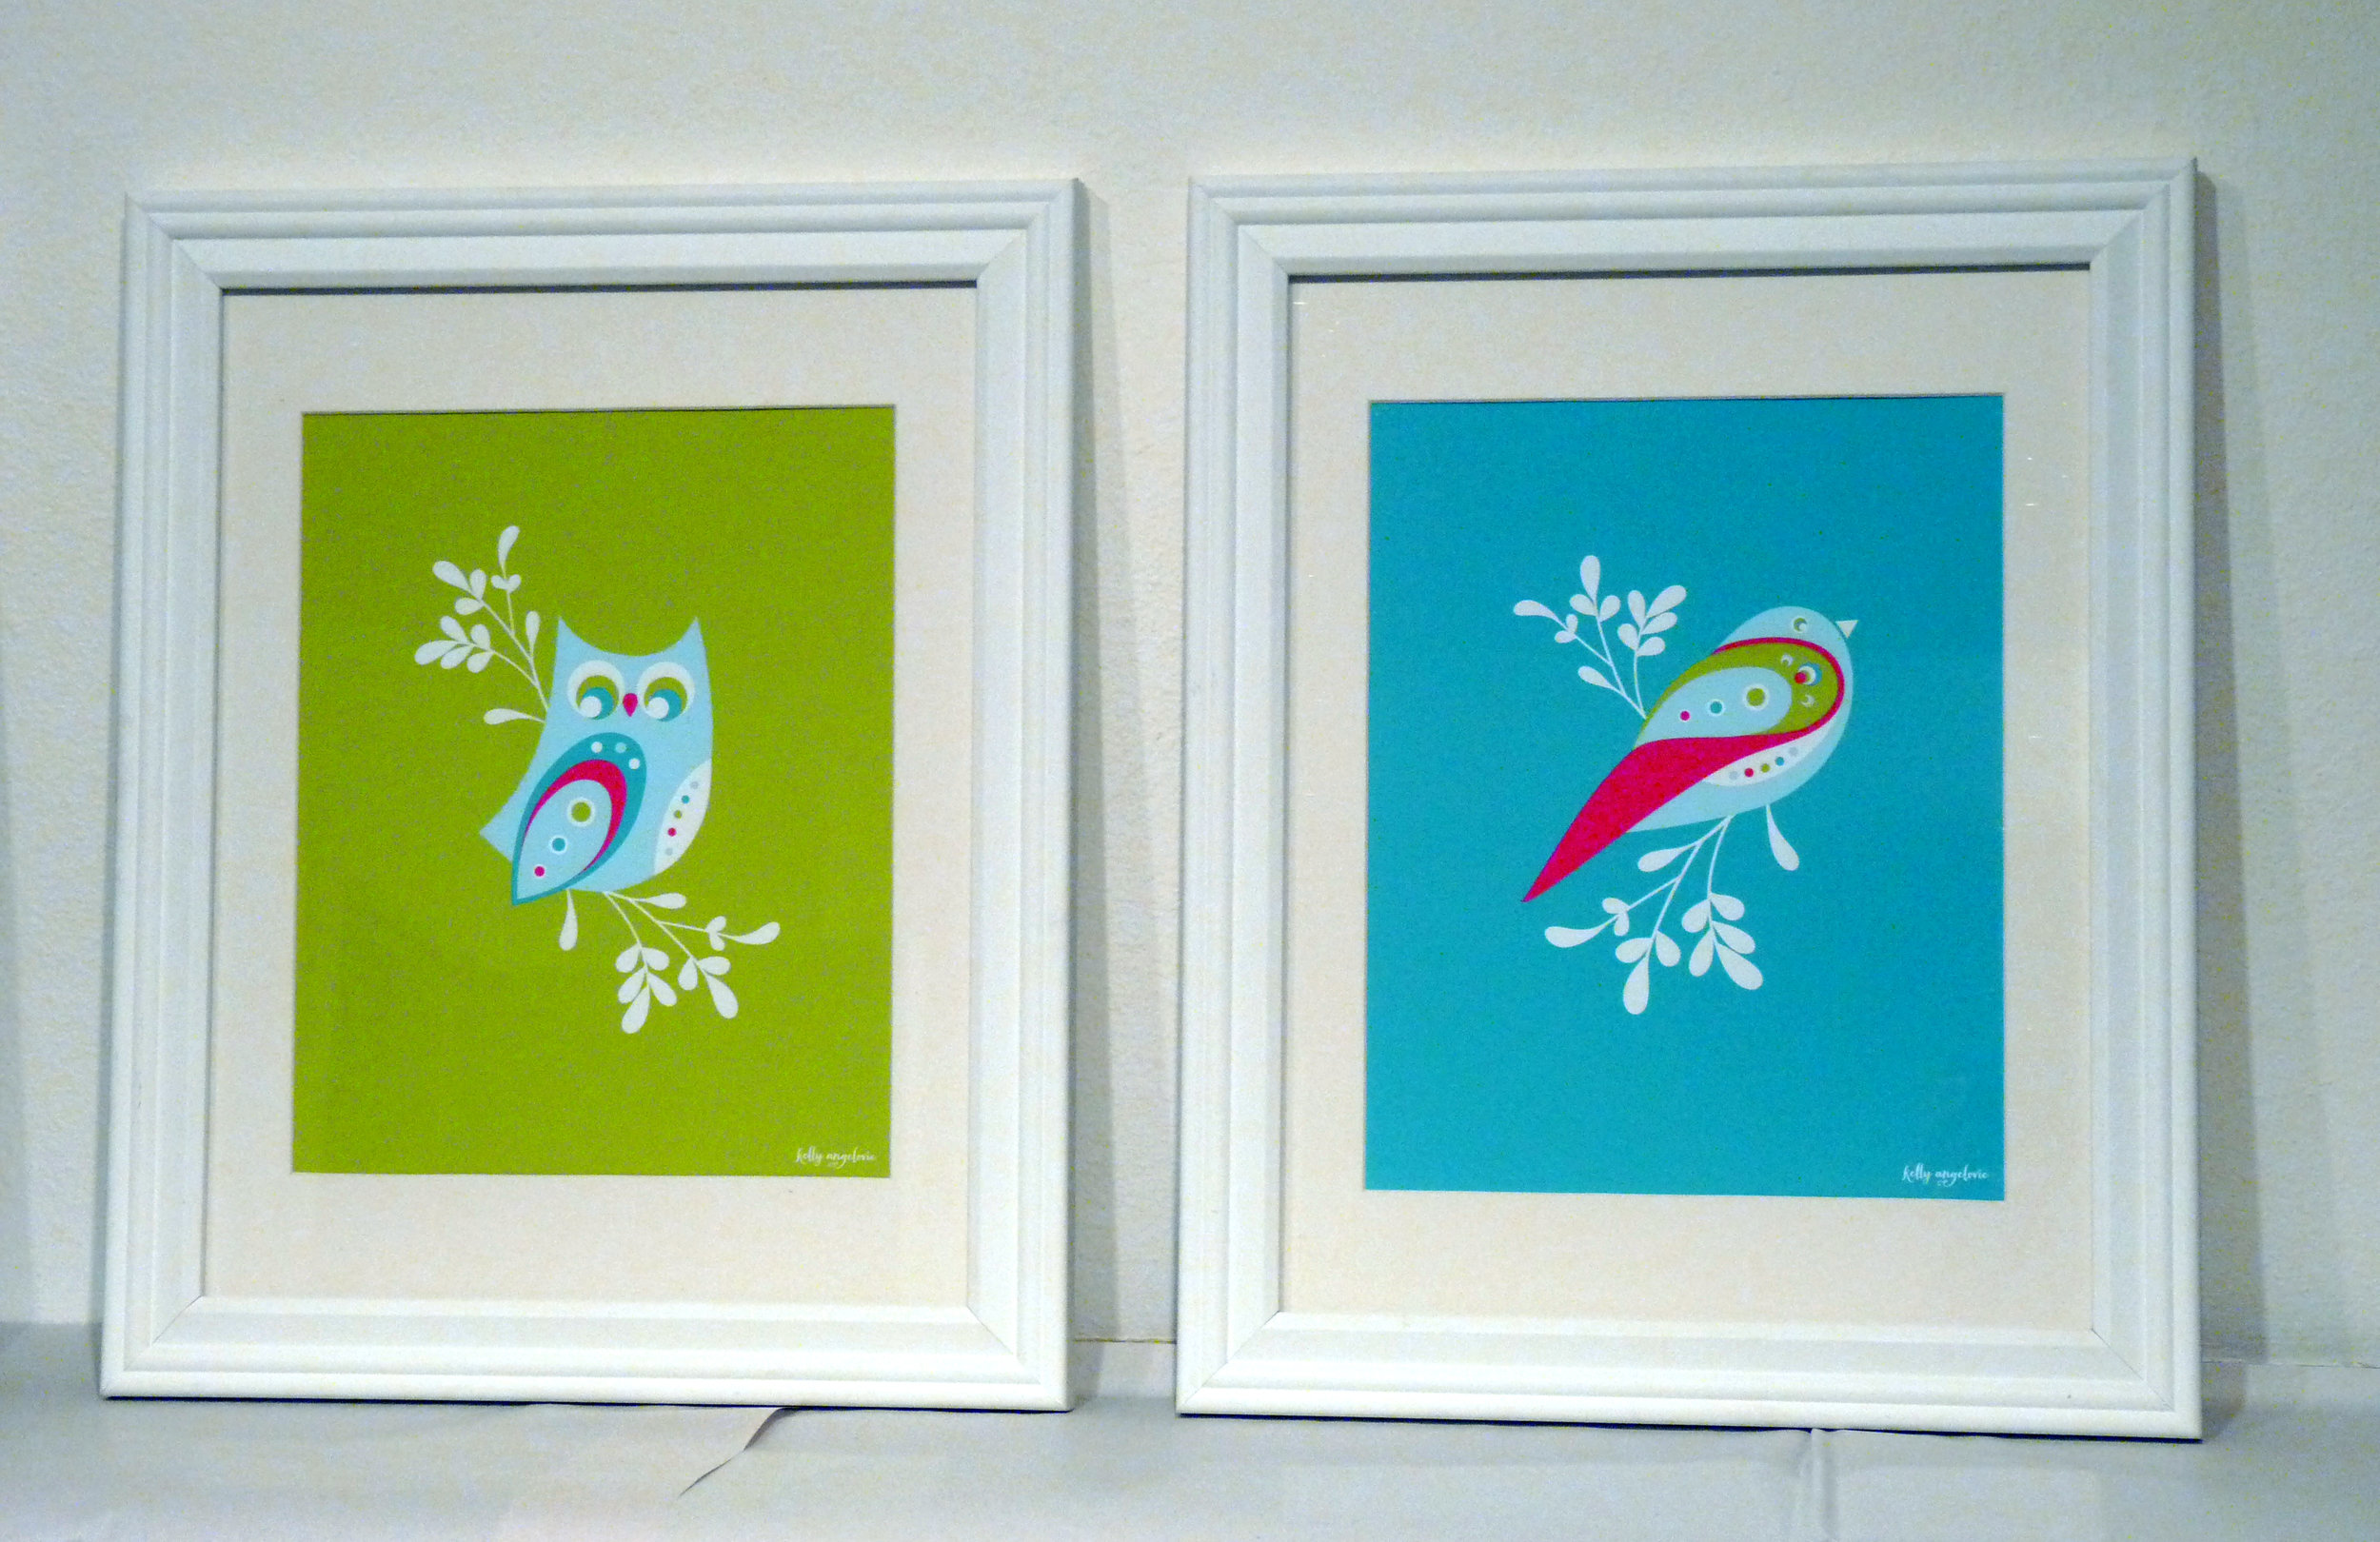 Framed Owl and Bird prints for sale